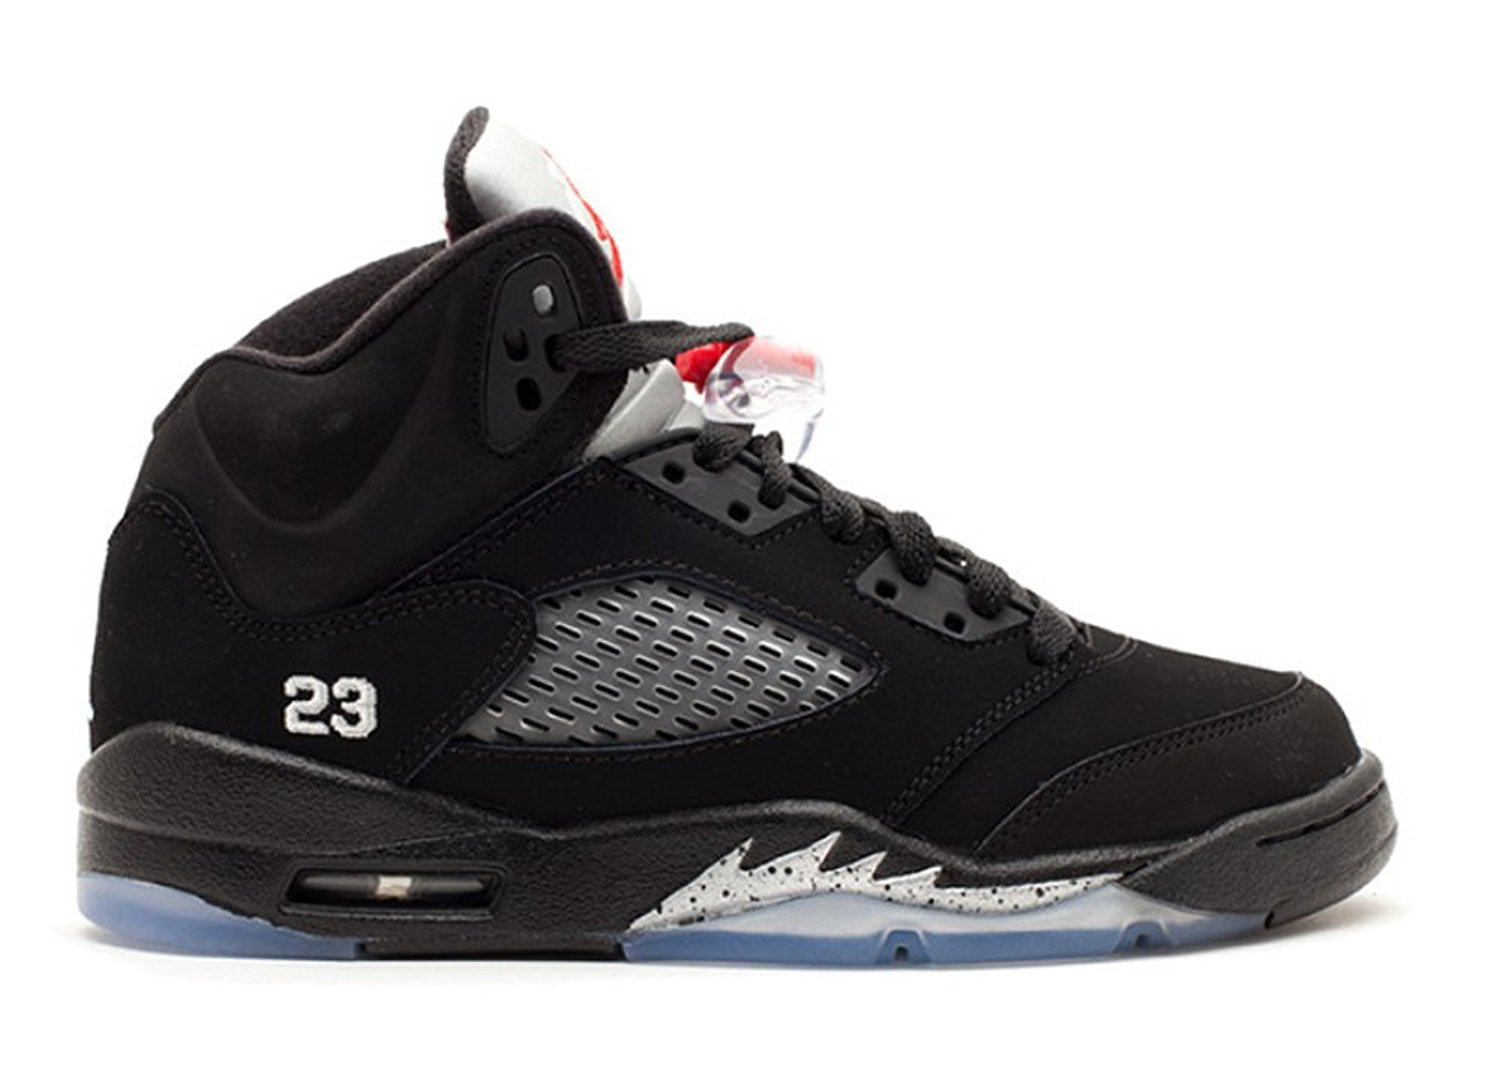 best sneakers 1c2e1 2724a ... wolf Grey Black hot lava white 012231 2 Leather Basketball Shoes · Mrs  Annabel Day Men s Basketball Shoe Air Jordan 5 Retro gs 2011 release Black  ...